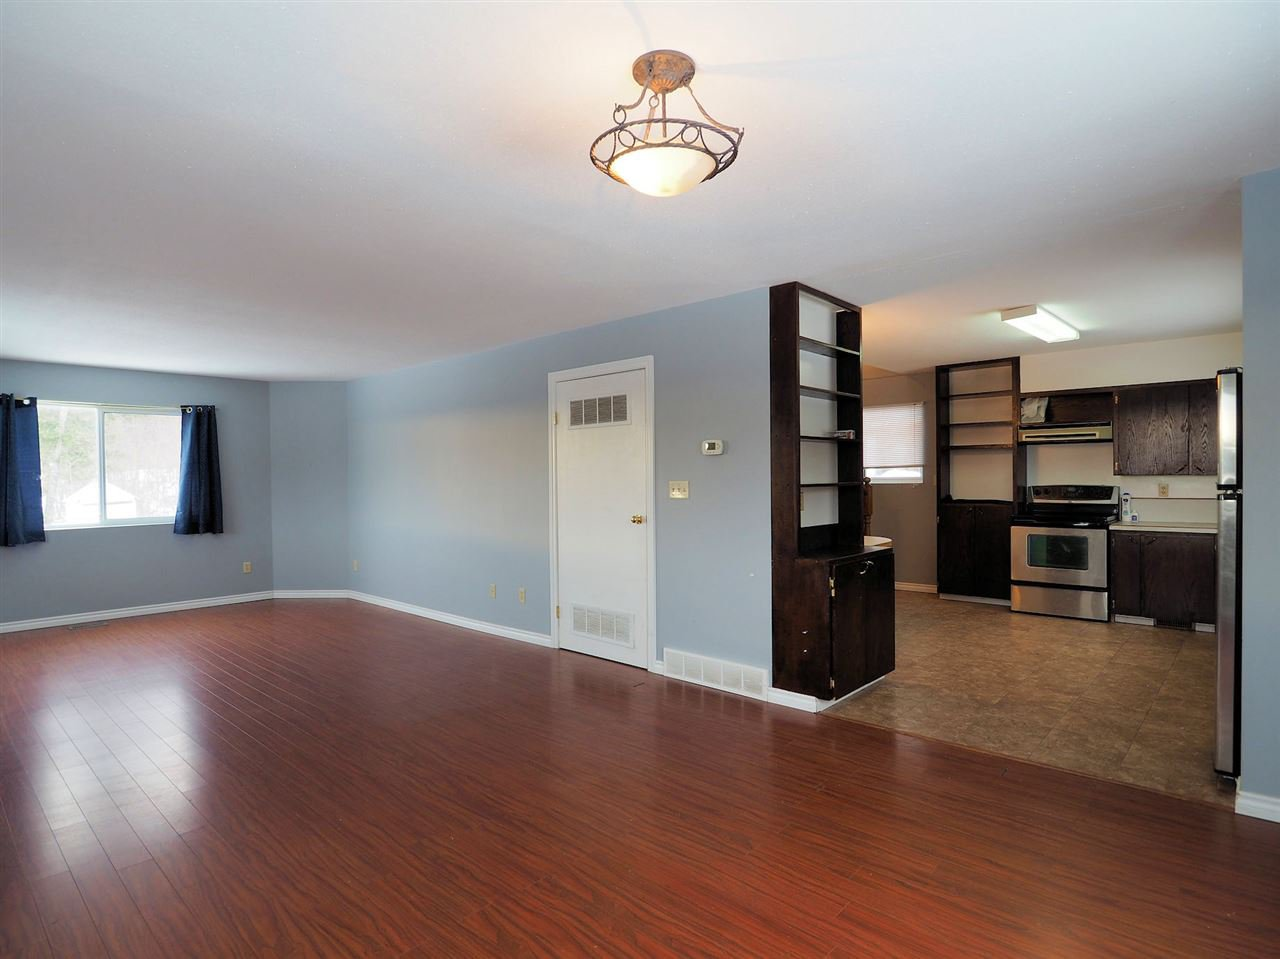 Photo 5: Photos: 6314 SPURAWAY Drive: Forest Grove House for sale (100 Mile House (Zone 10))  : MLS®# R2433467